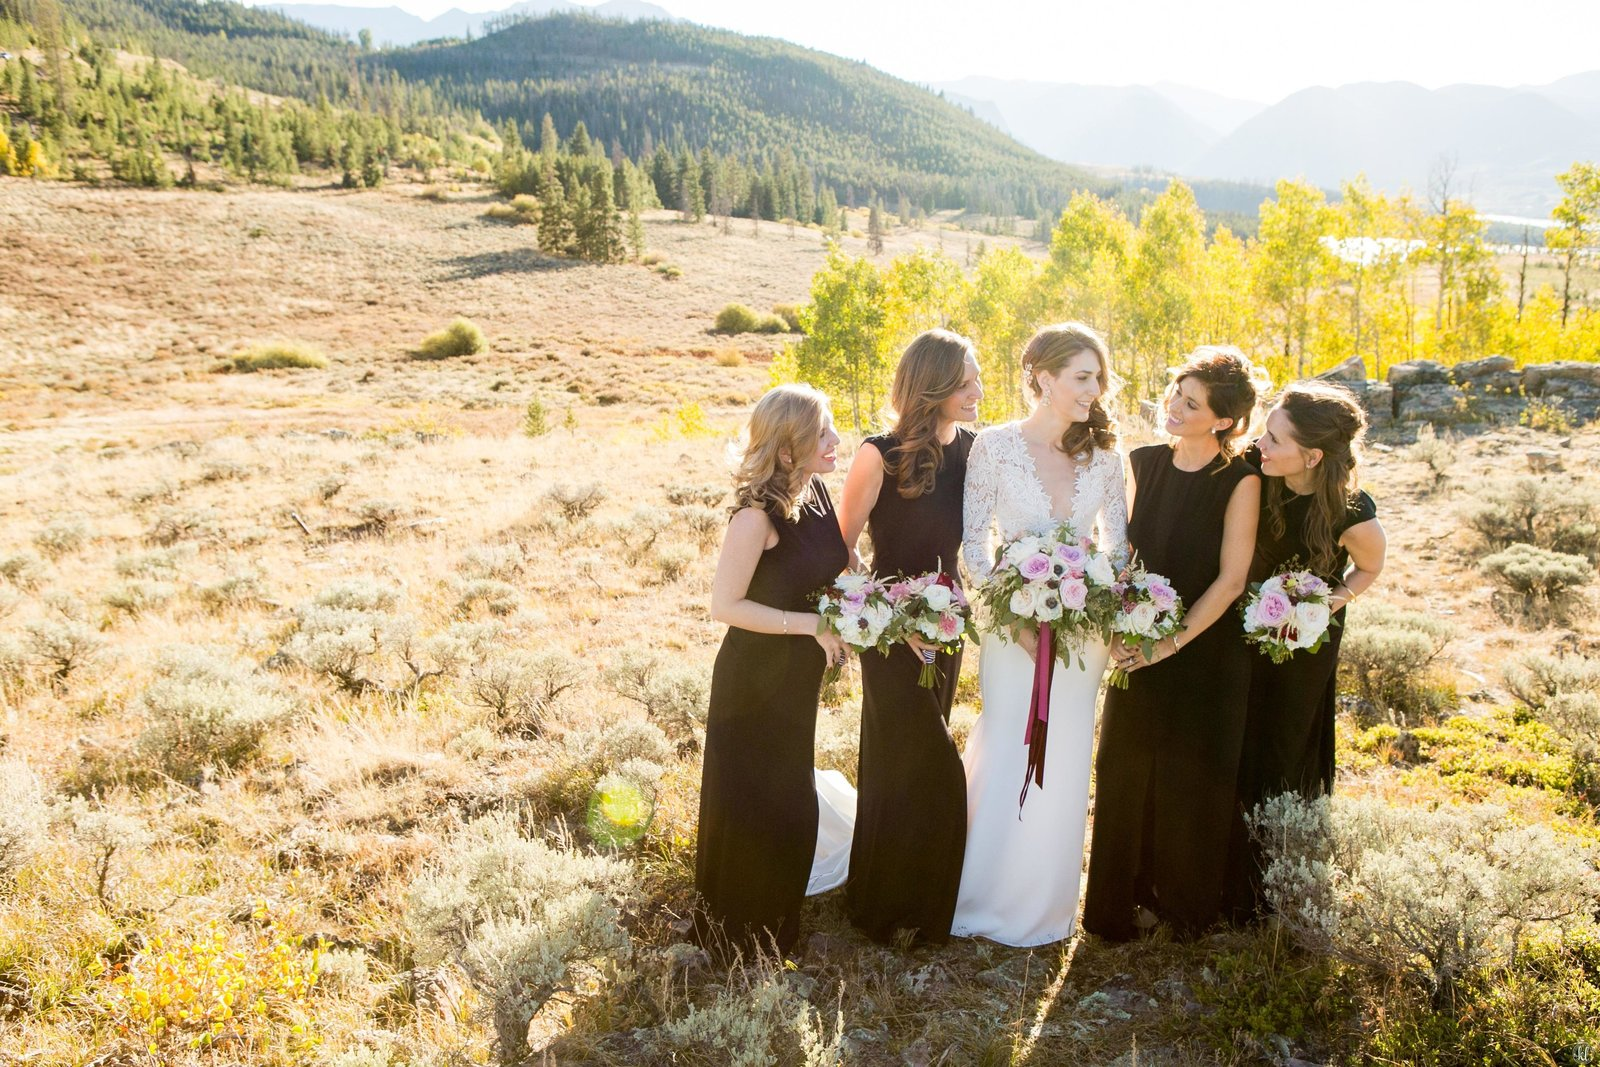 Lehti_Schack_Kristina_Lynn_Photography__Design_150919schack504re